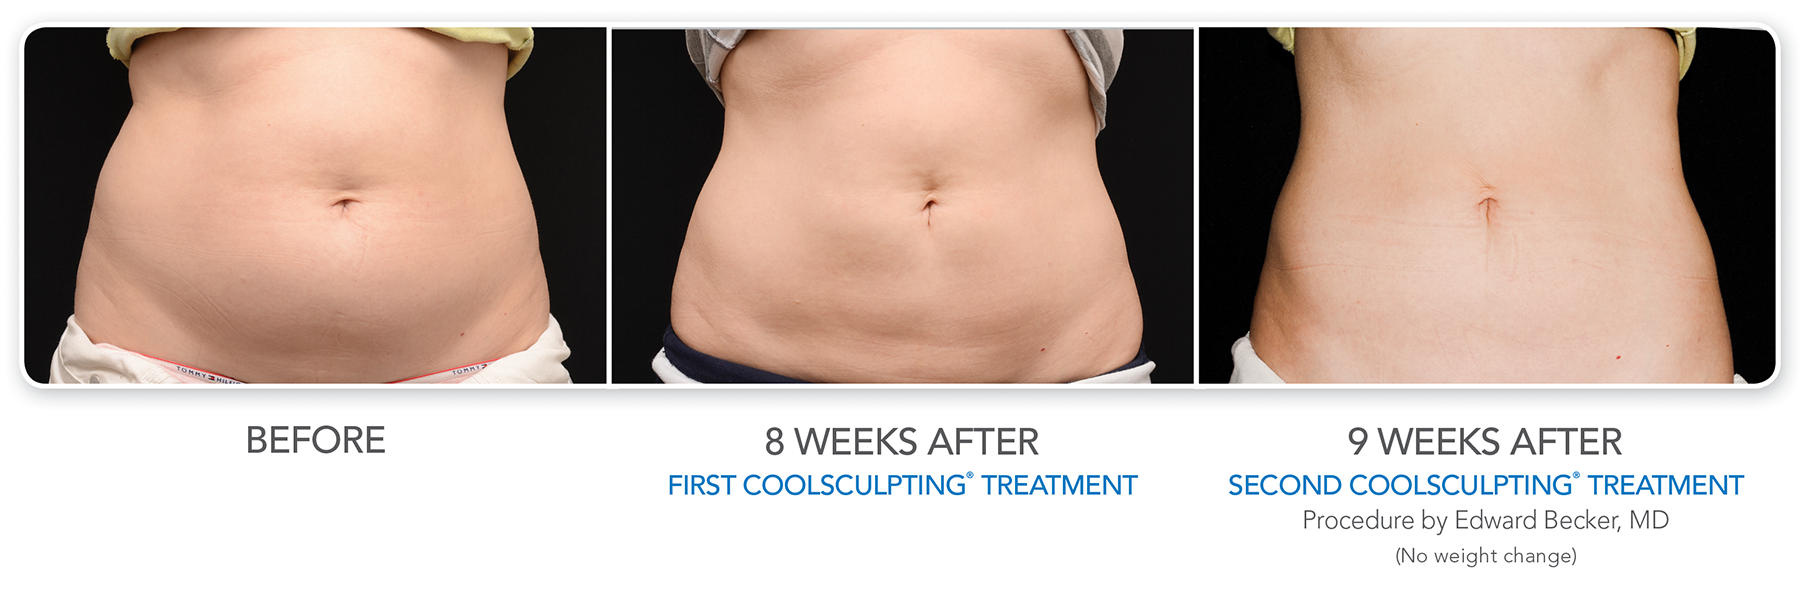 the stomach of a patient before and after the coolsculpting procedure